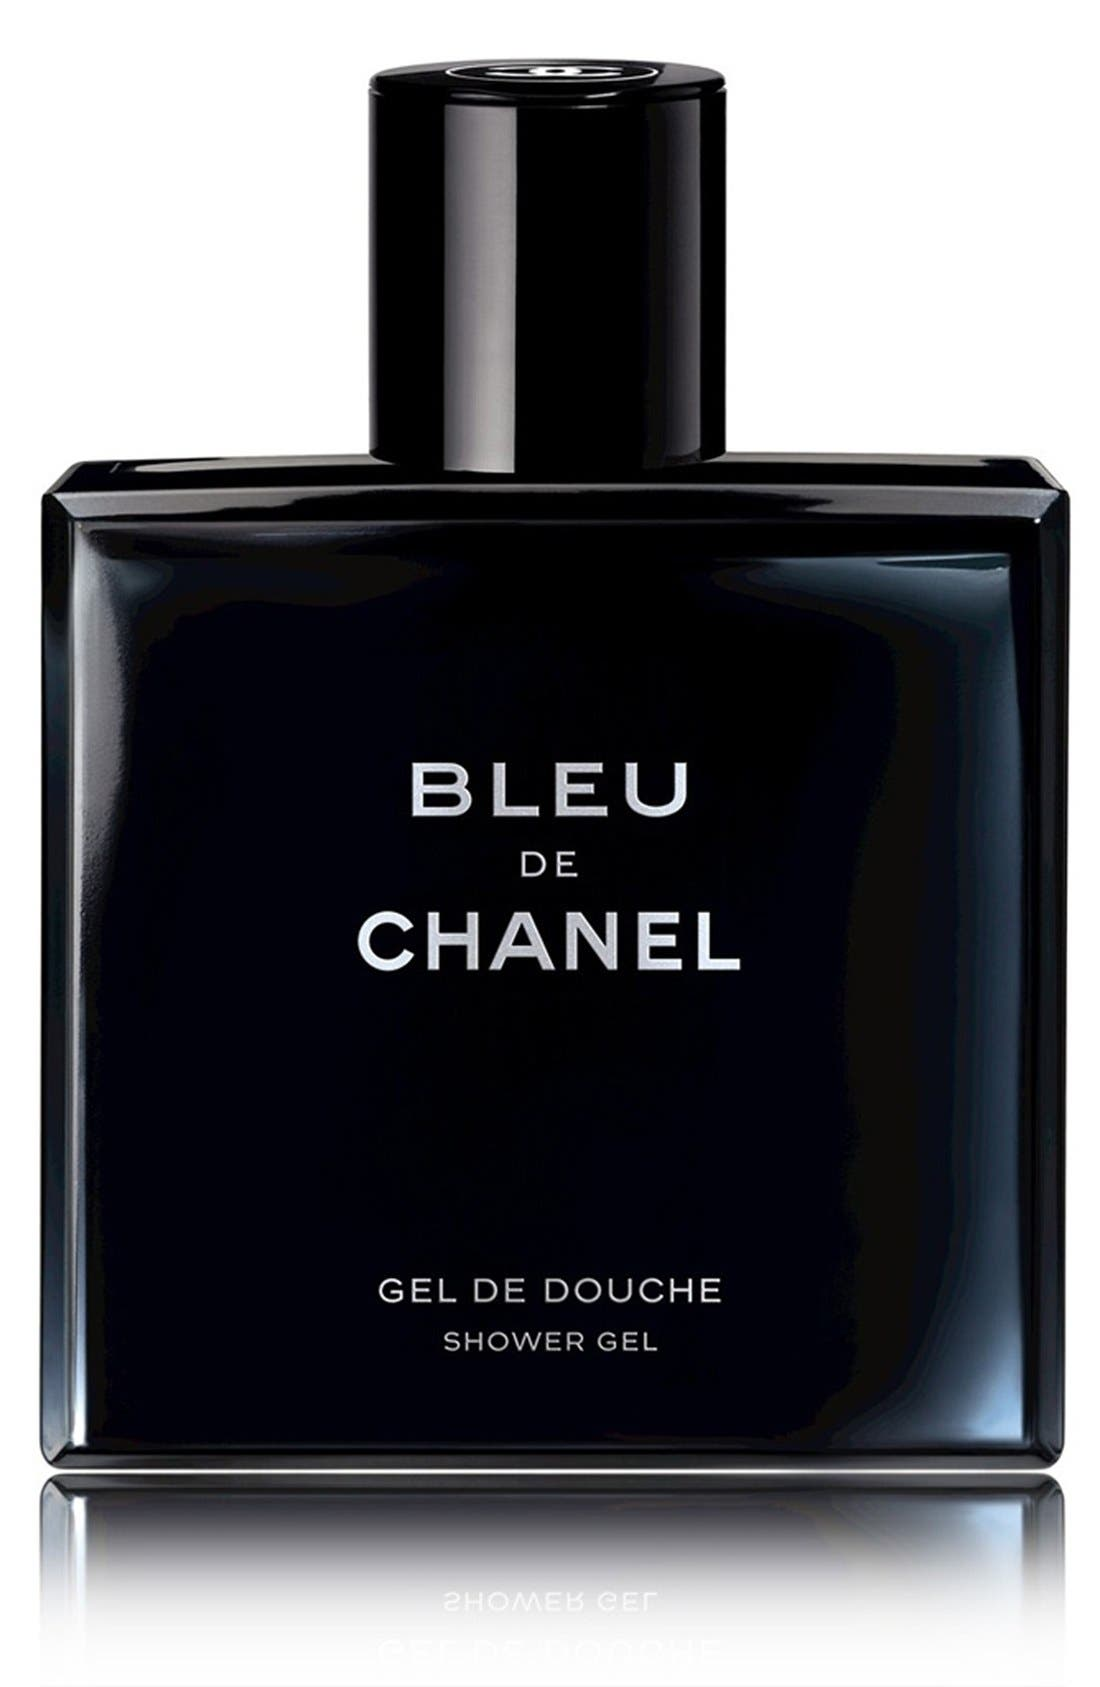 CHANEL BLEU DE CHANEL 